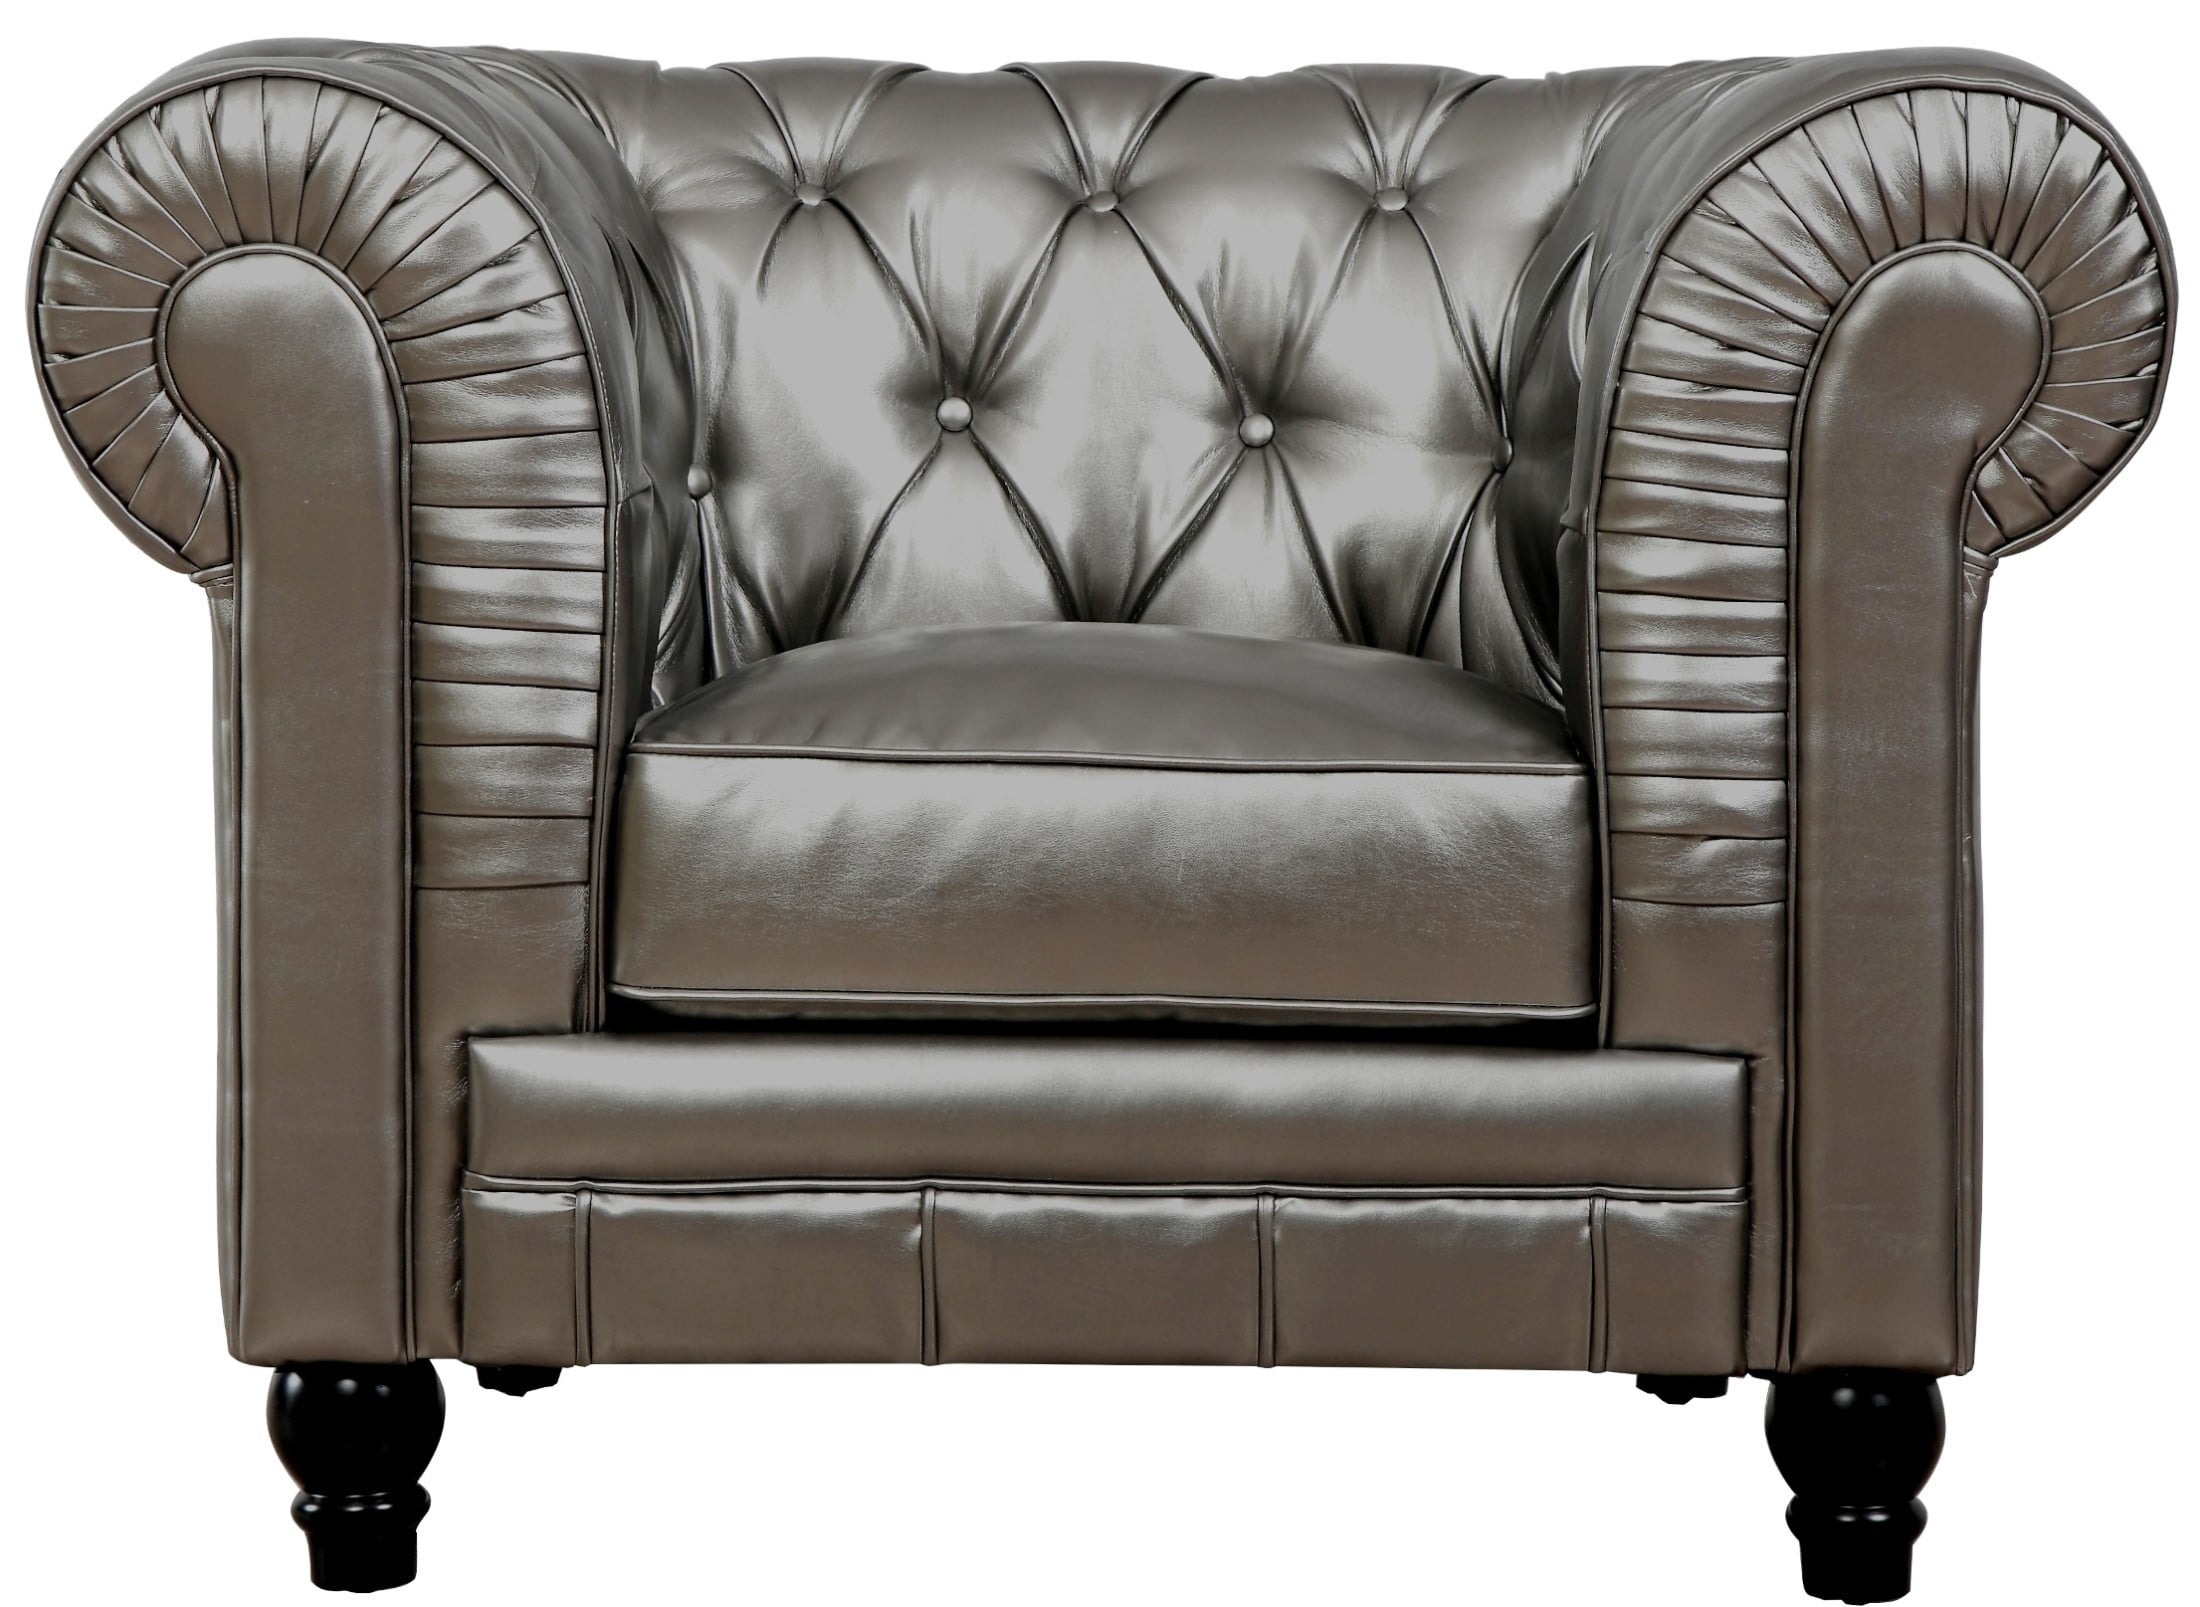 Leather Club Chair Zahara Silver Leather Club Chair From Tov Tov C40